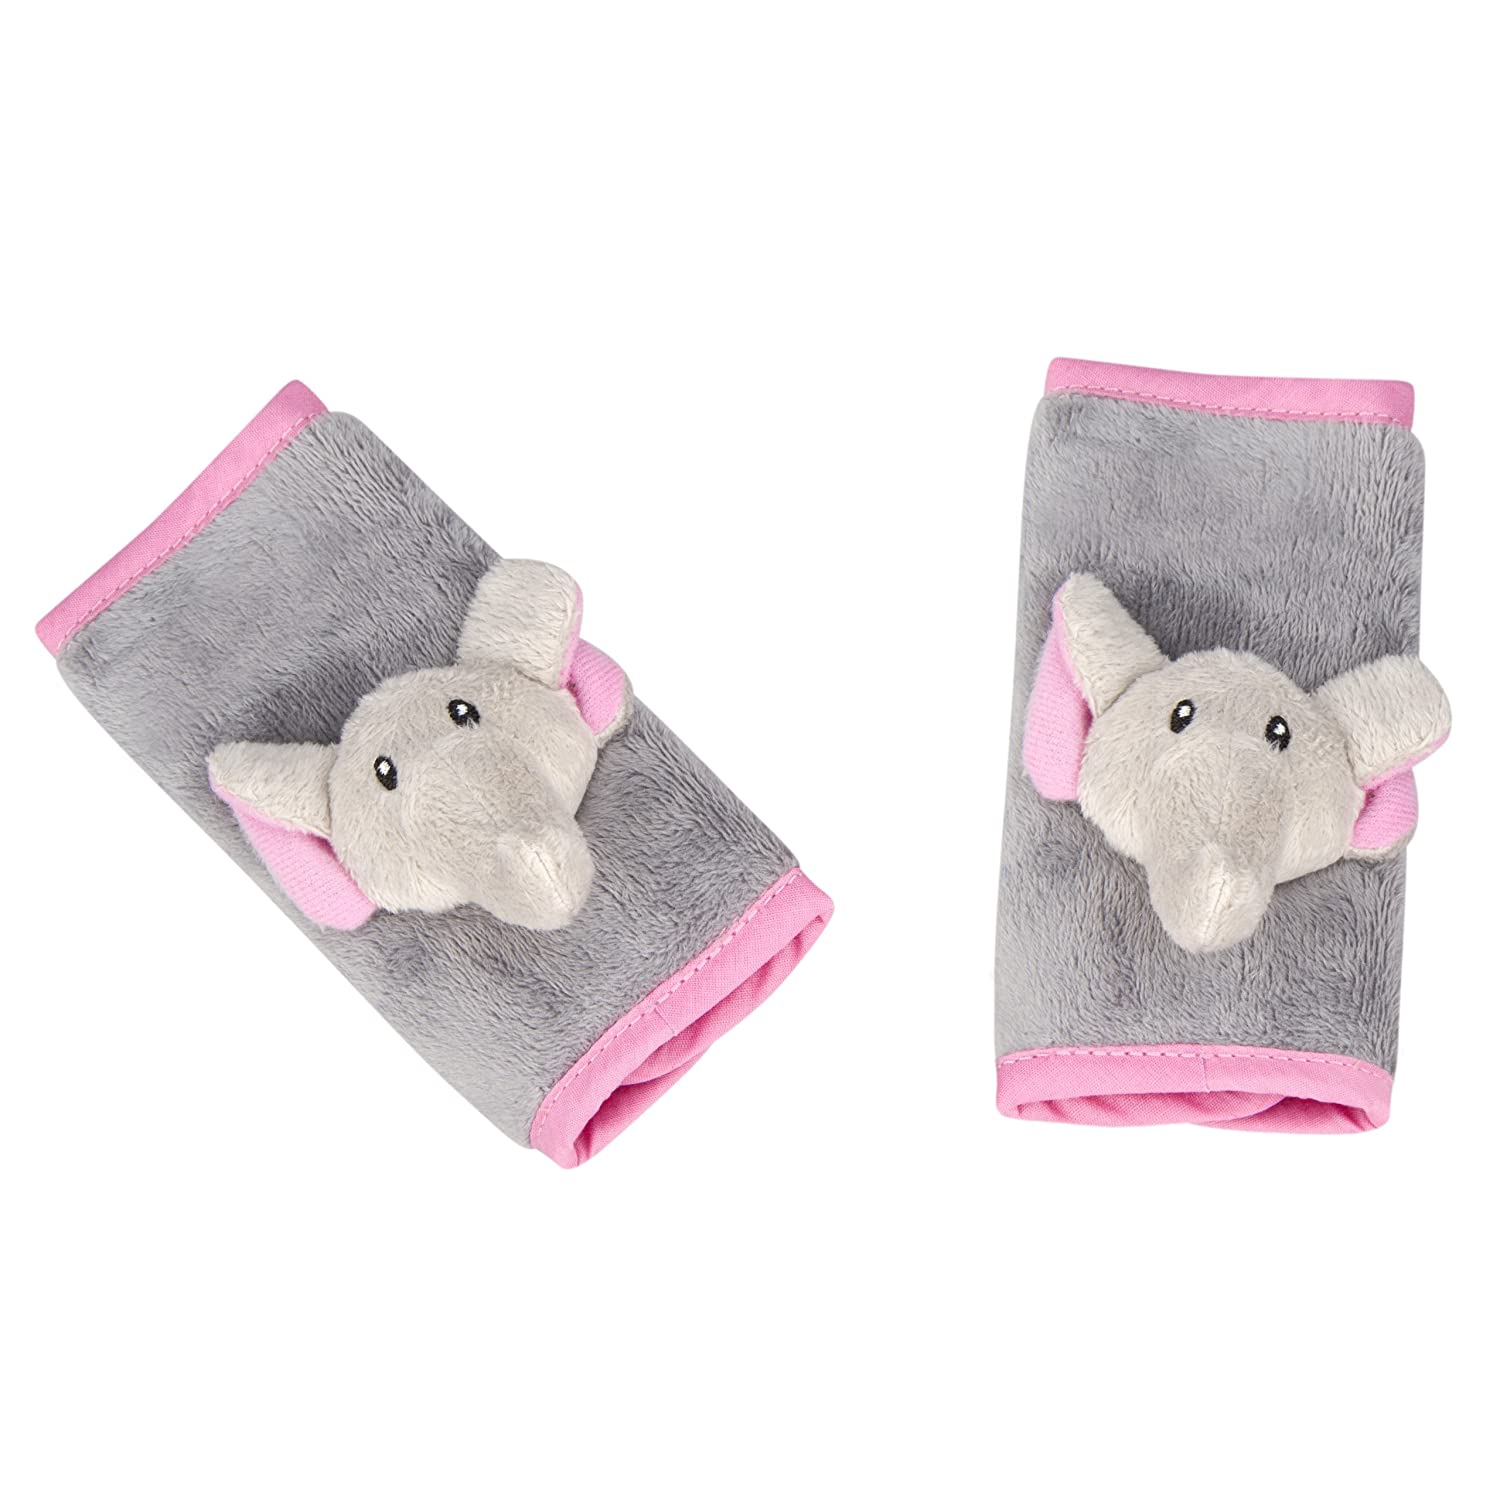 Animal Planet Strap Covers 2 Pack, Pink Elephant 60157